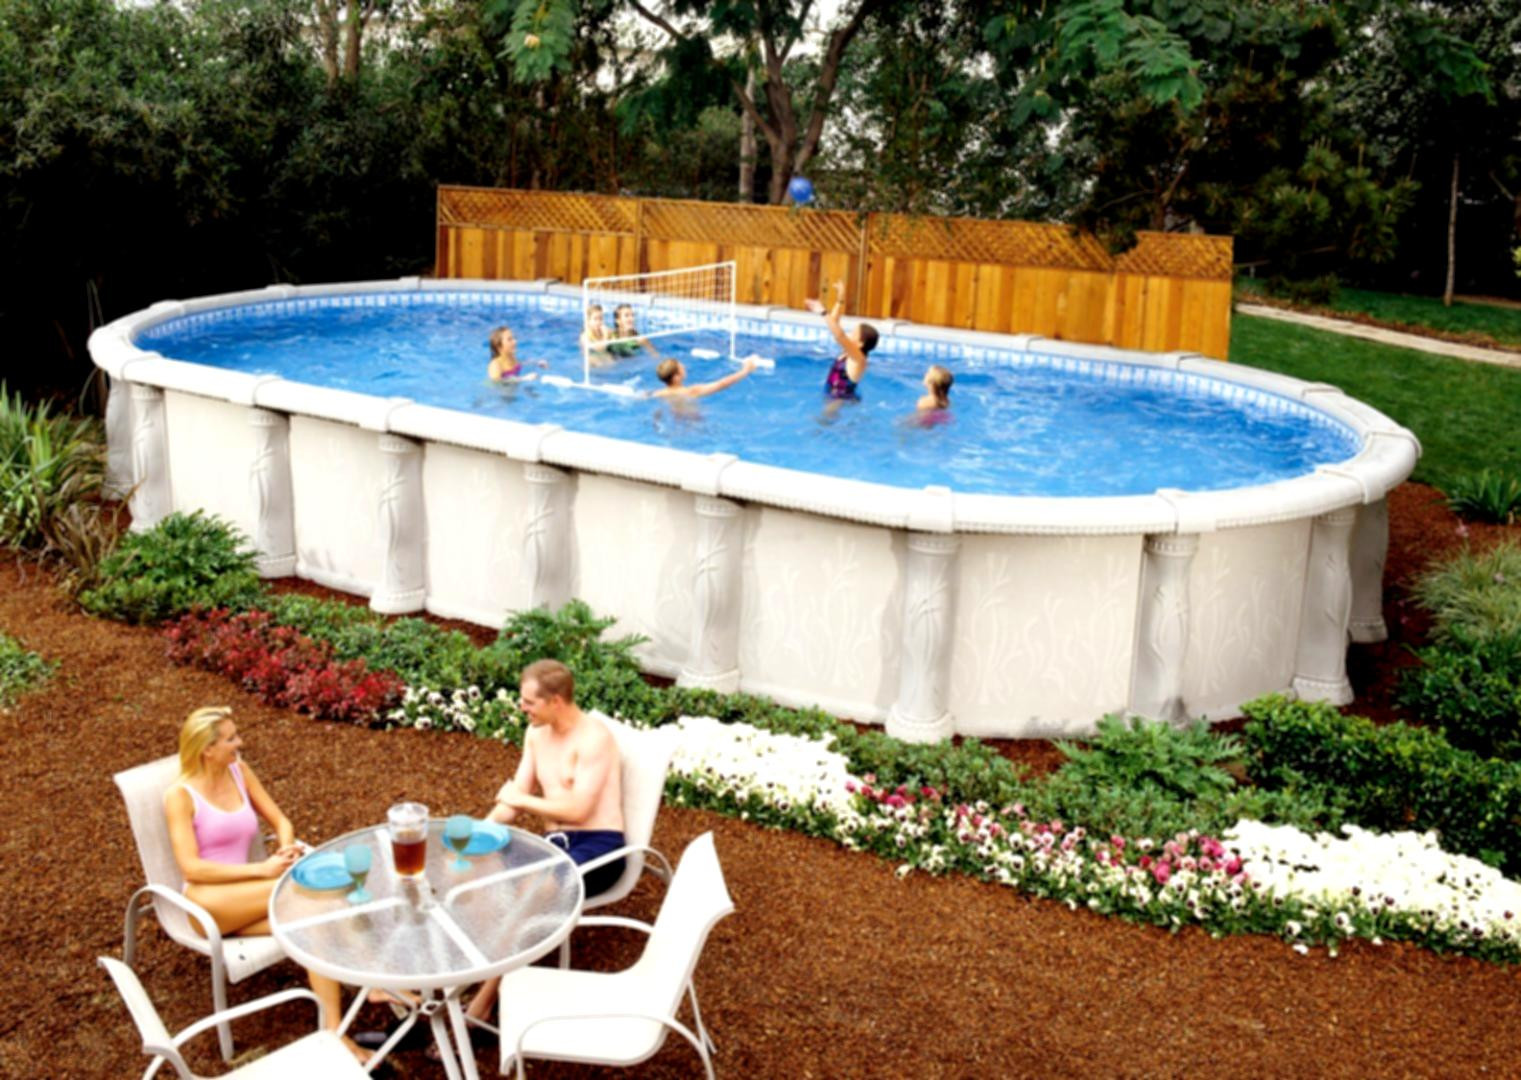 Above Ground Pool Installers  above ground swimming pool installation panies